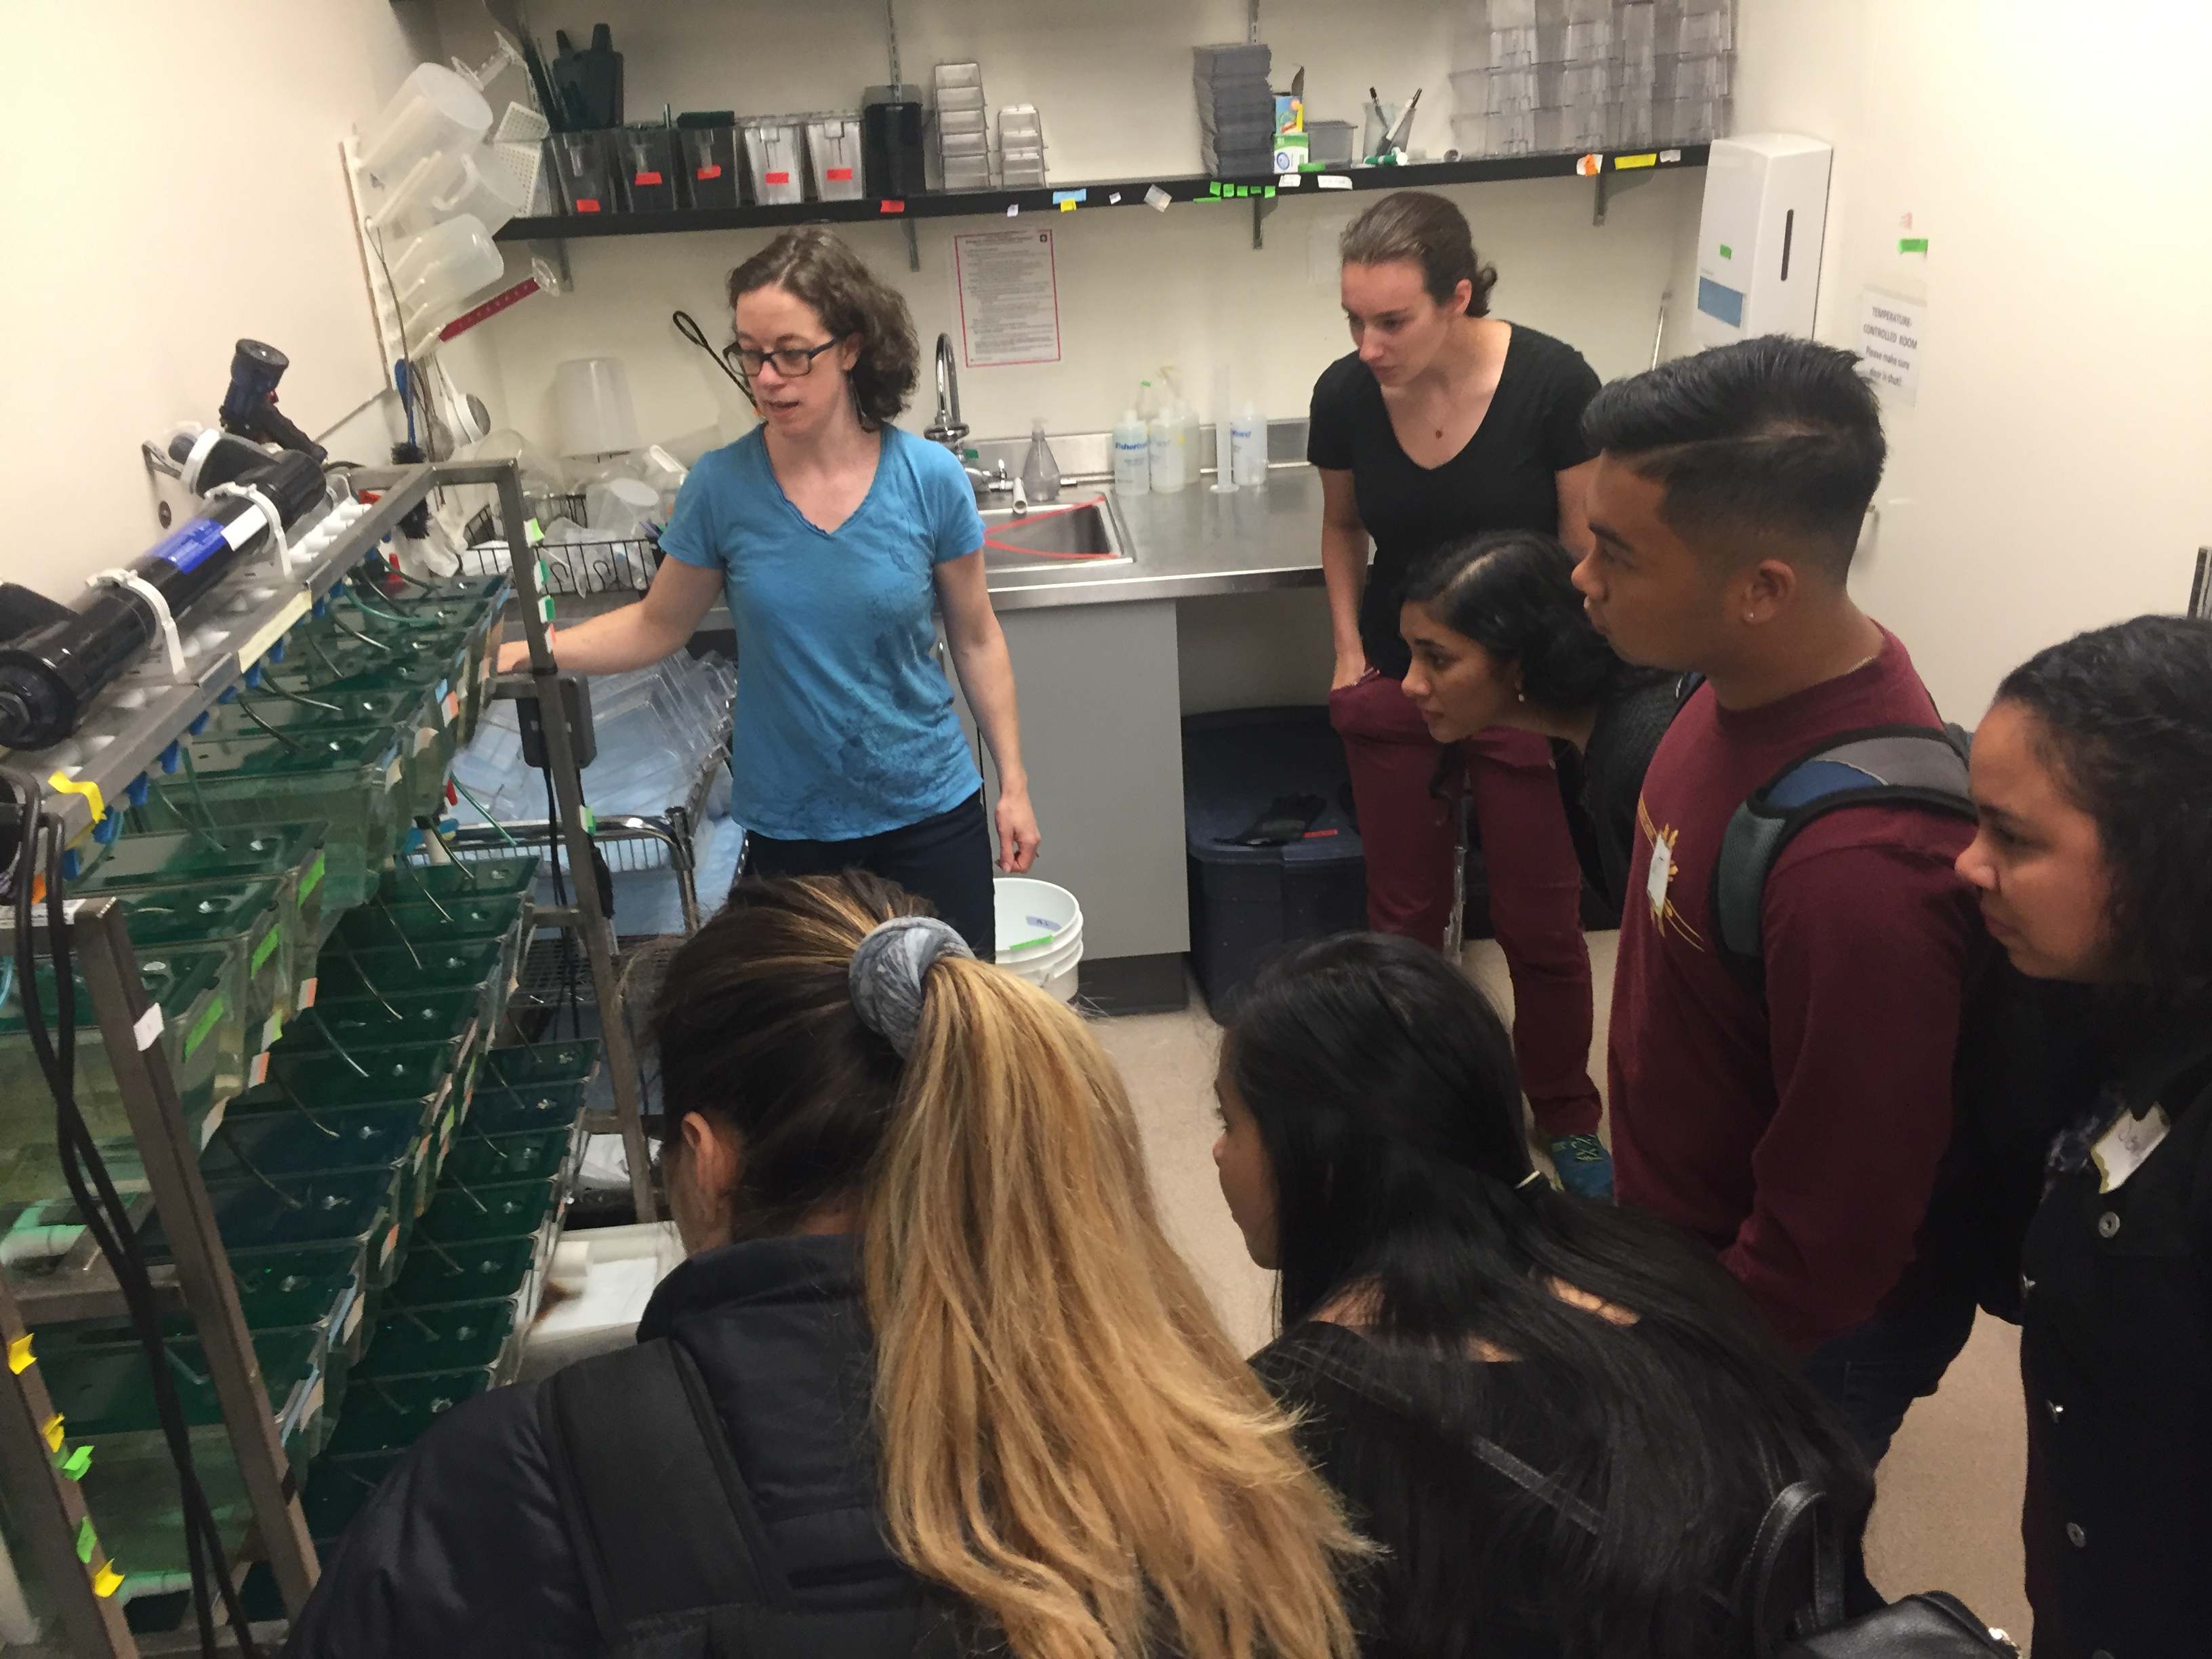 Postdoctoral researcher, Margaret Mills, shows off tanks of zebrafish in the Gallagher lab.